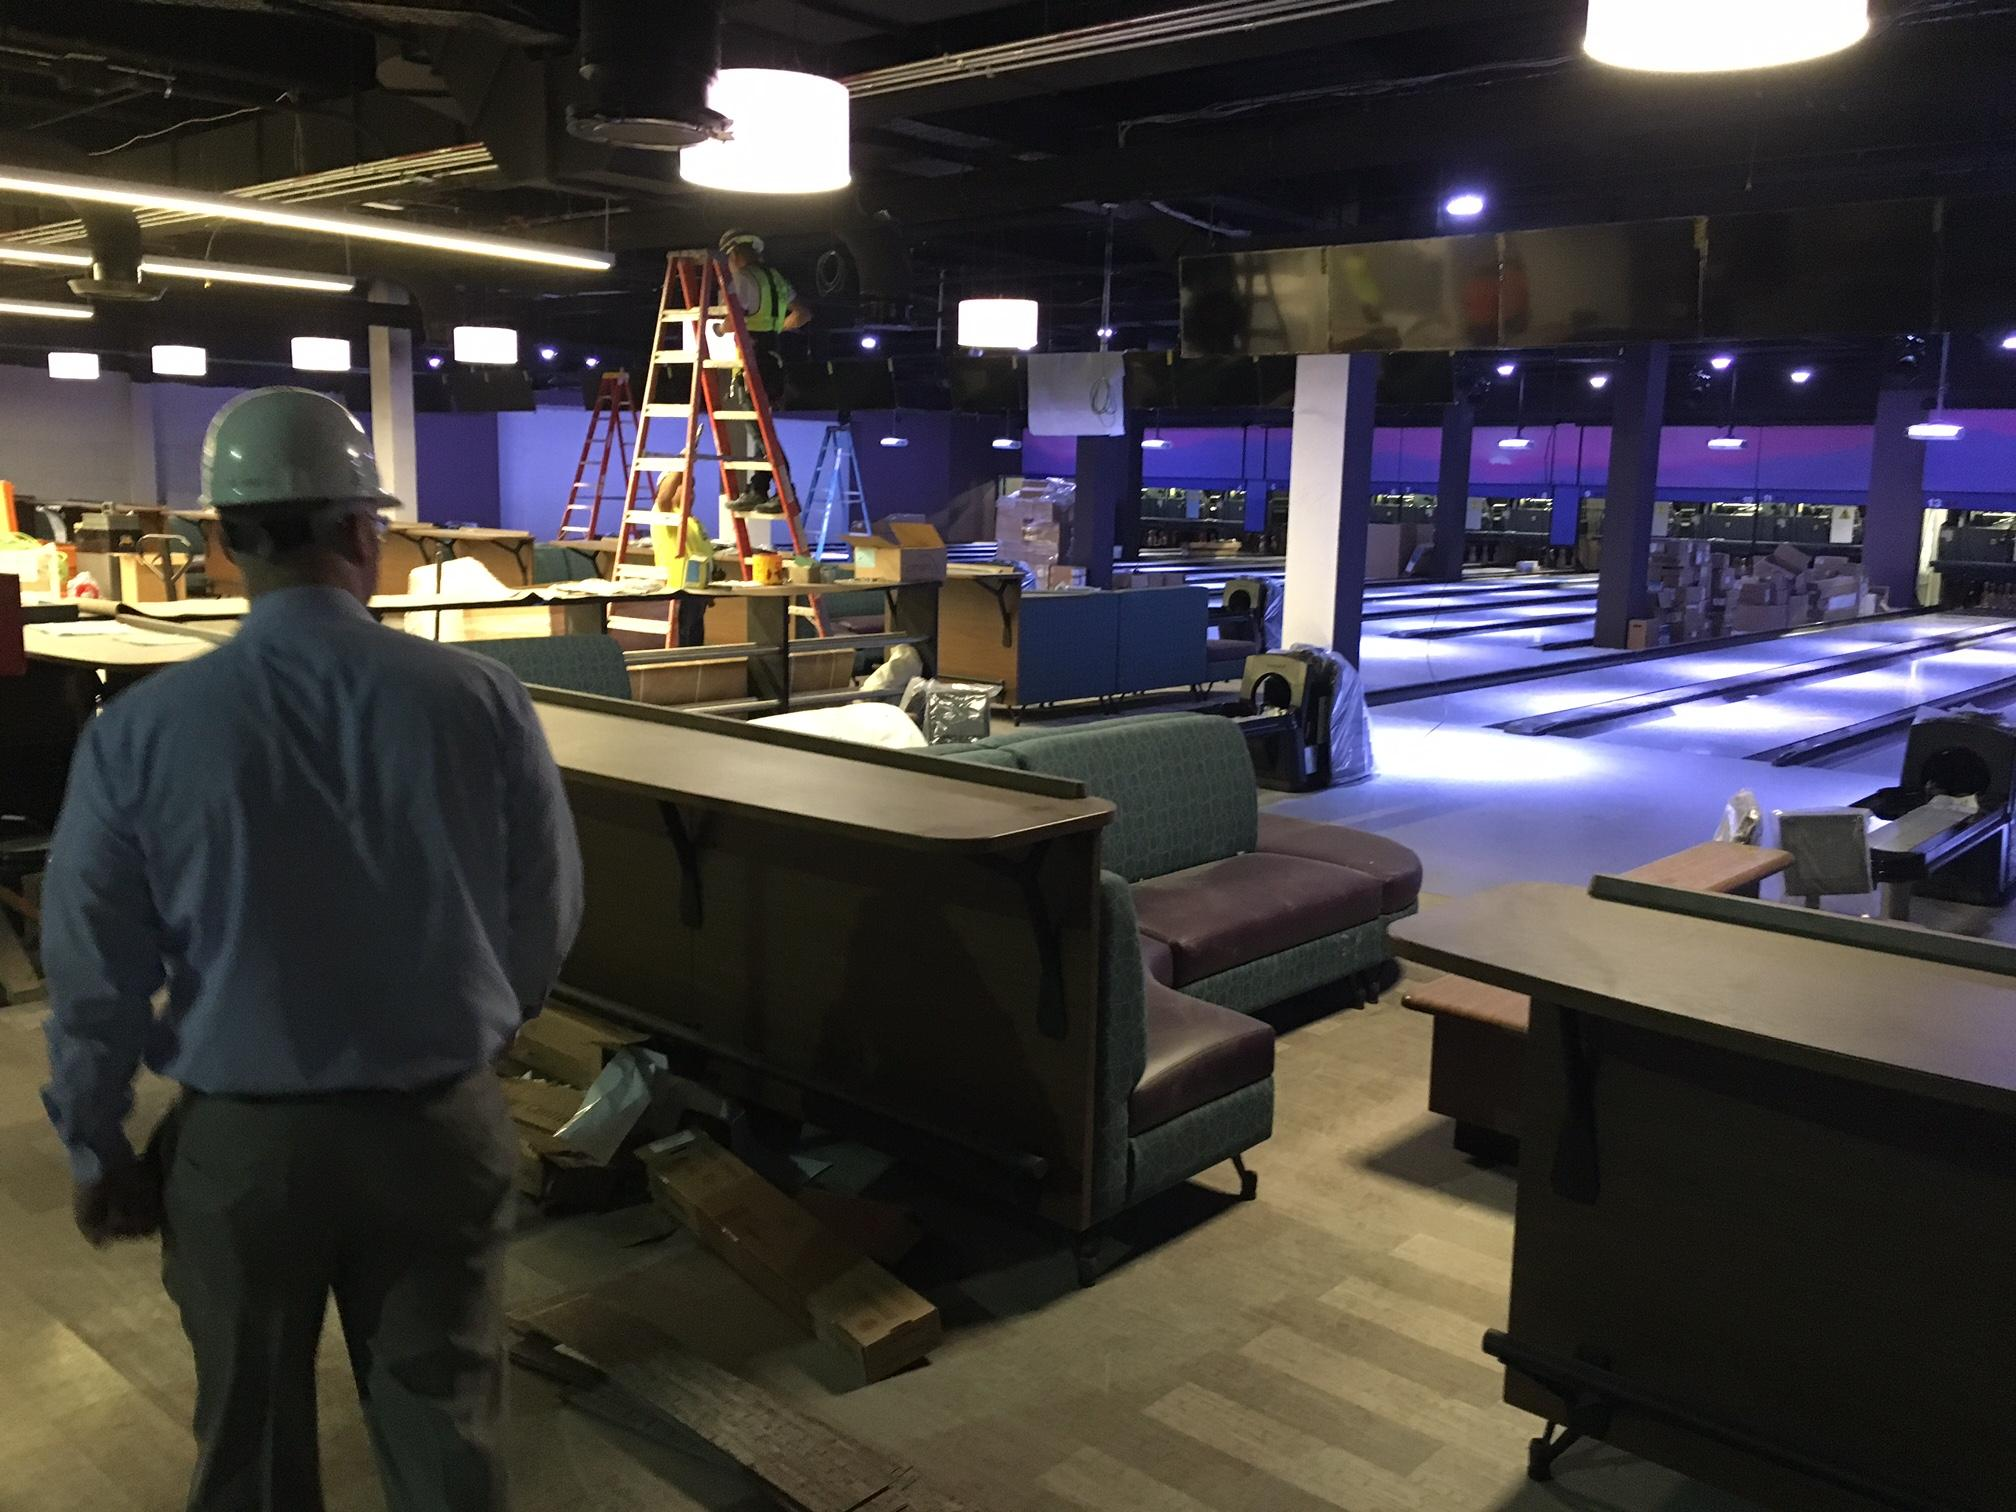 Harrah's Cherokee Casino expects bowling alleys and family-friendly entertainment to roll a business strike. Work is almost finished on a $13 million expansion that includes 24 bowling alleys on two levels. The first floor will have family-friendly entertainment with 16 bowling lanes, a 55-game arcade, a stage for music and shows and a restaurant. (Photo credit: WLOS Staff)